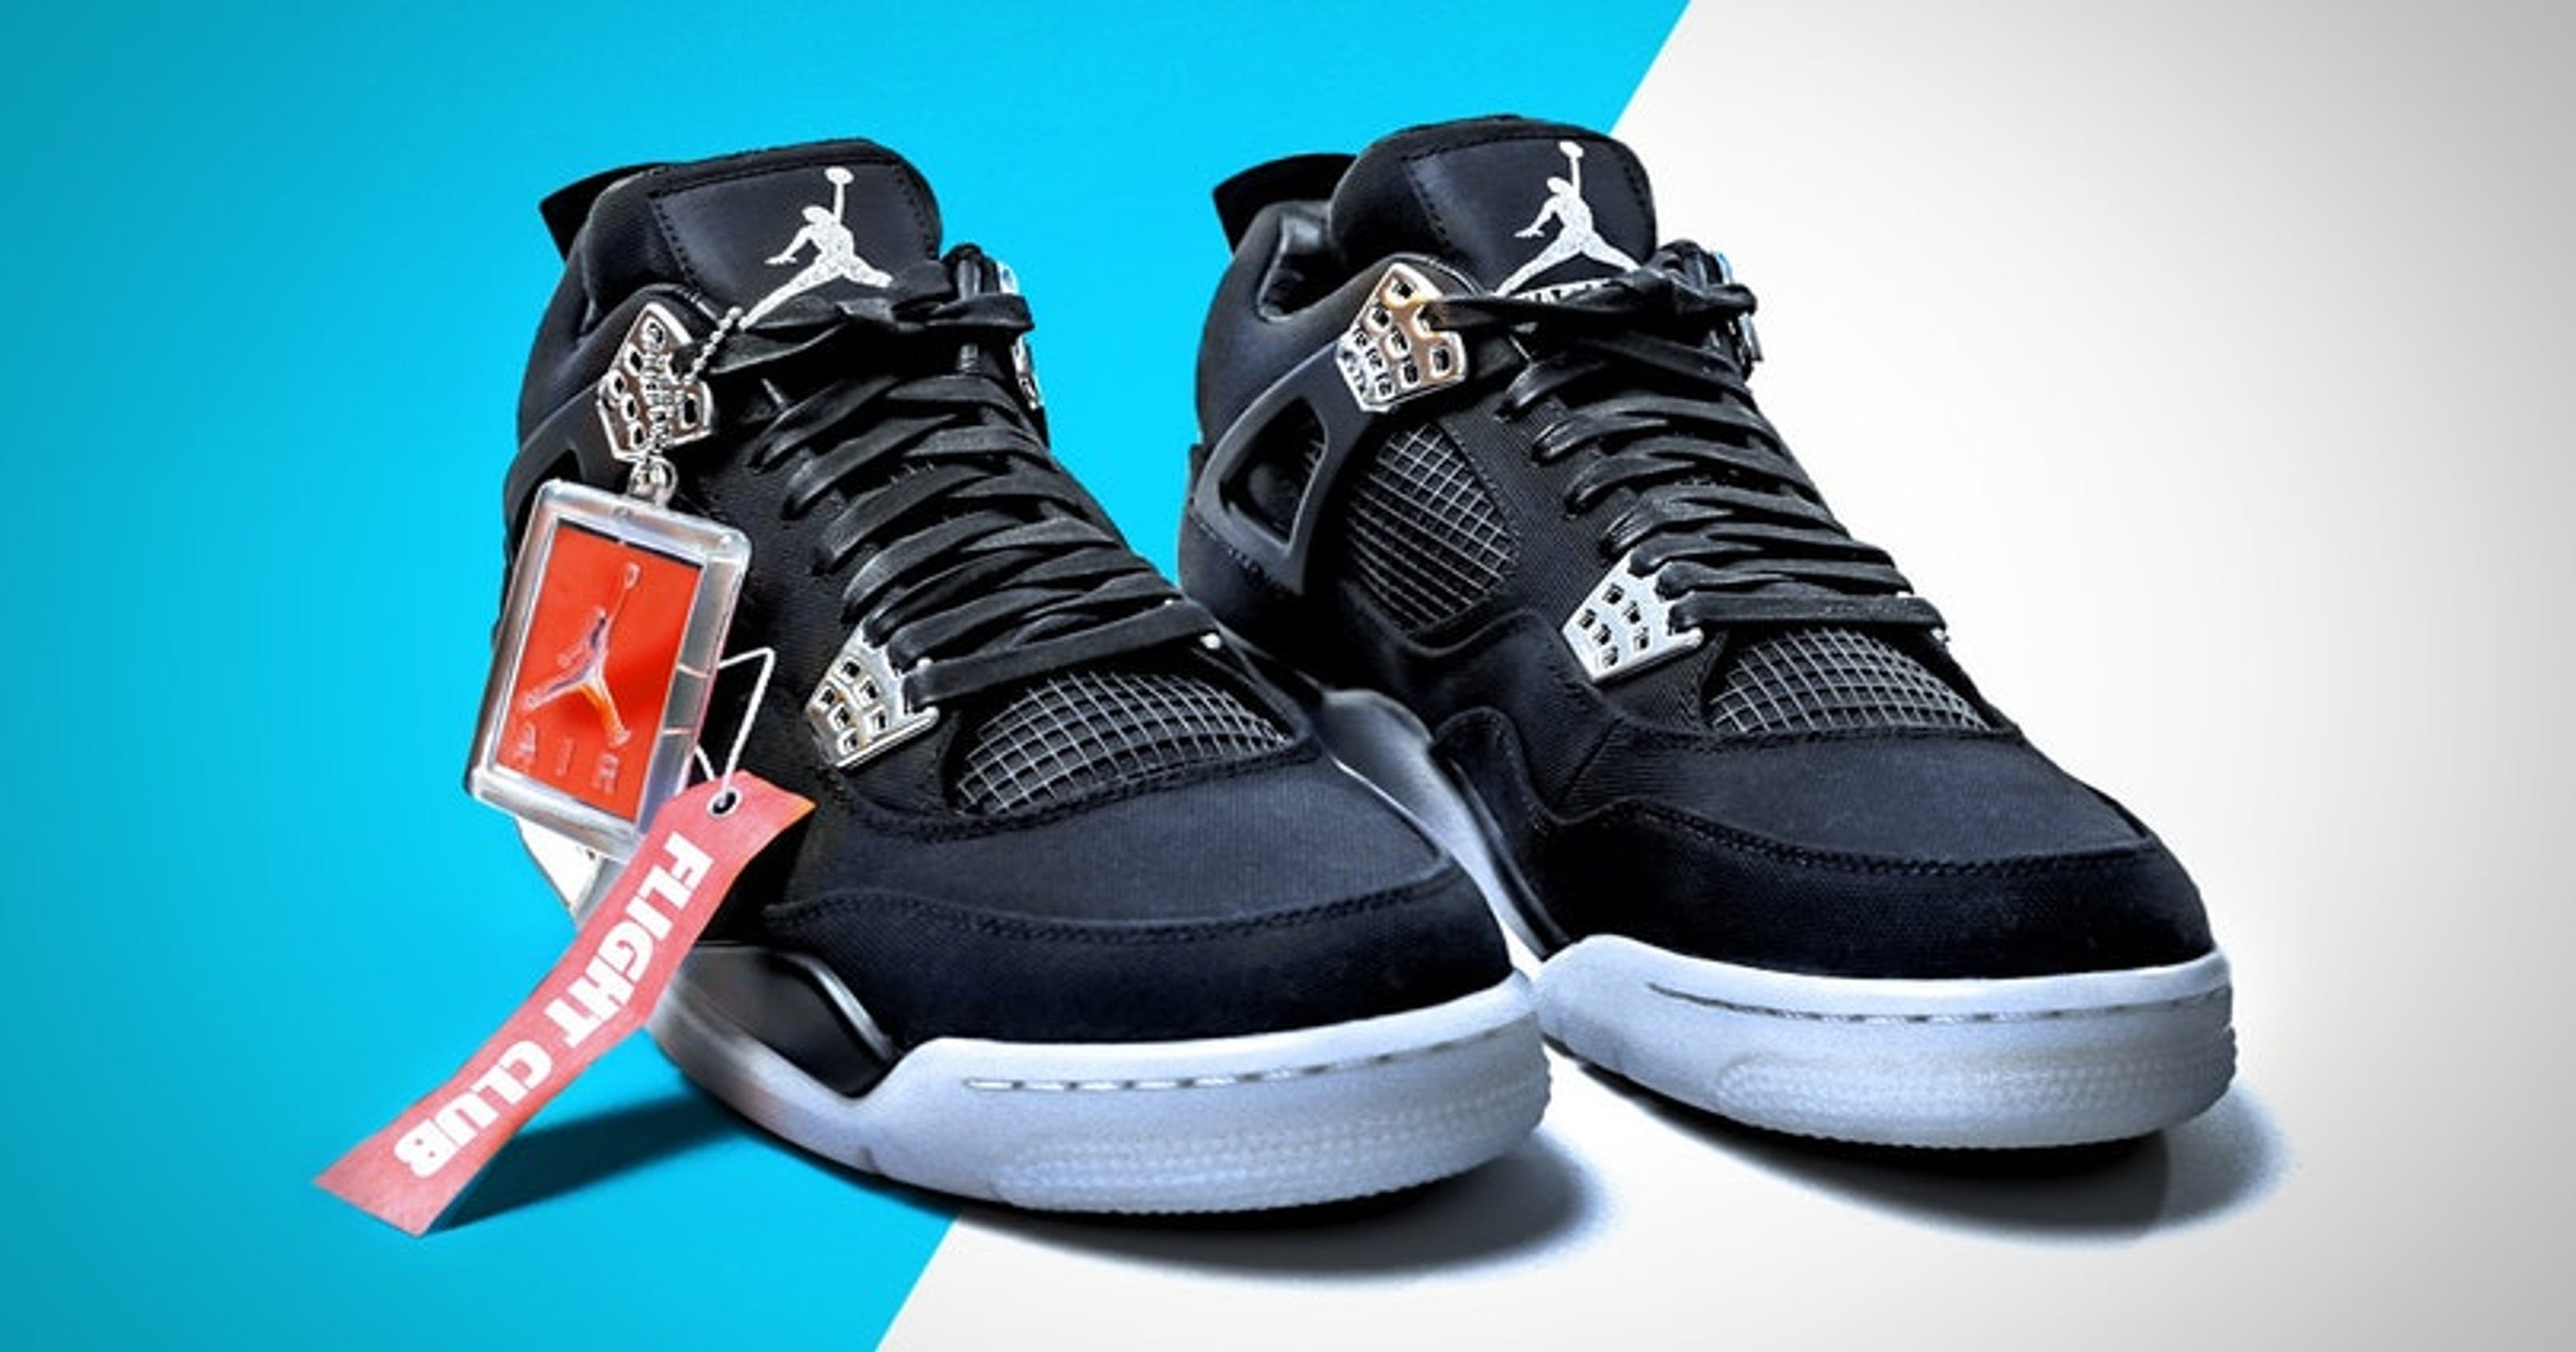 721bfb6662f8 Rare Eminem Nike Air Jordan 4 kicks up for auction